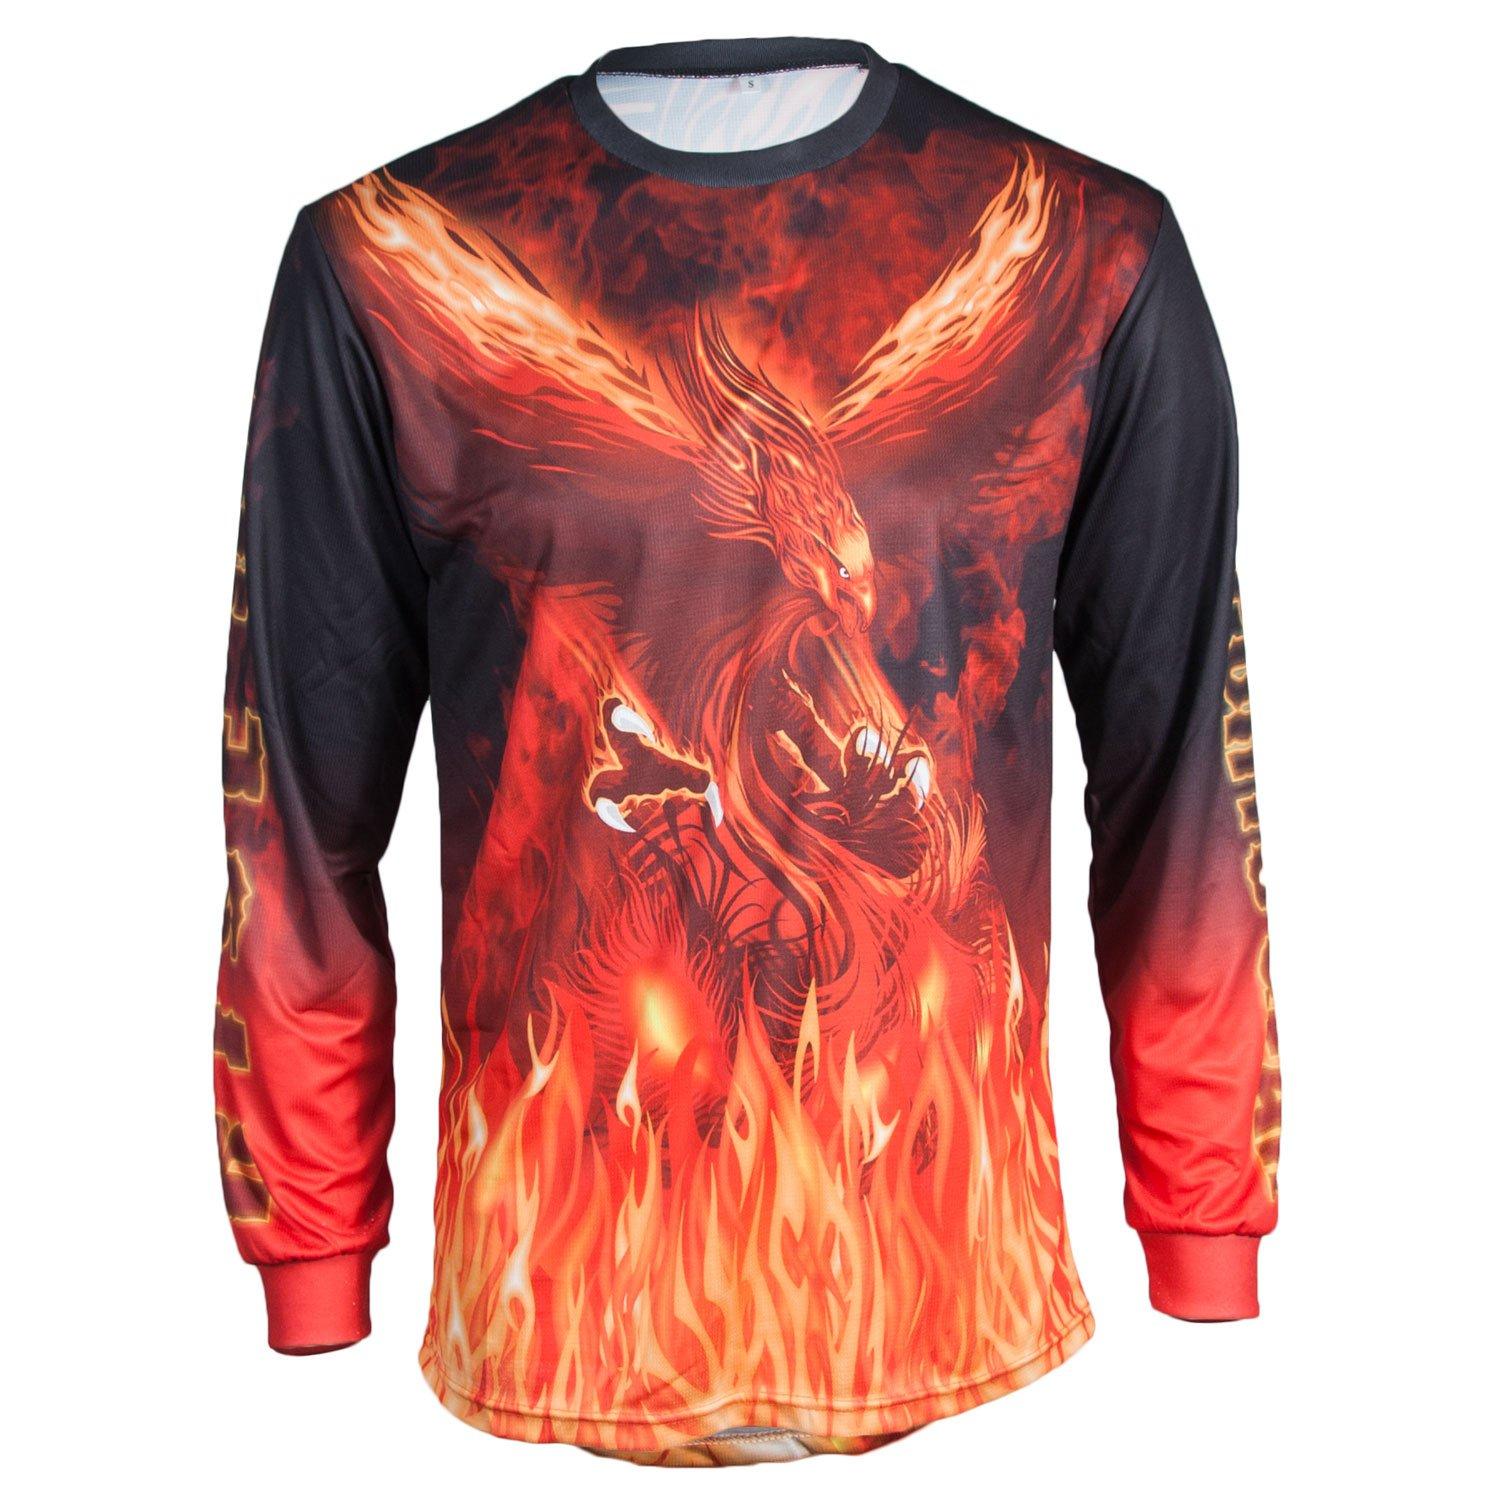 Motocross Off Road Motorcycle Jersey by KO Sports Gear - Red Phoenix Design (Adult X-Large)